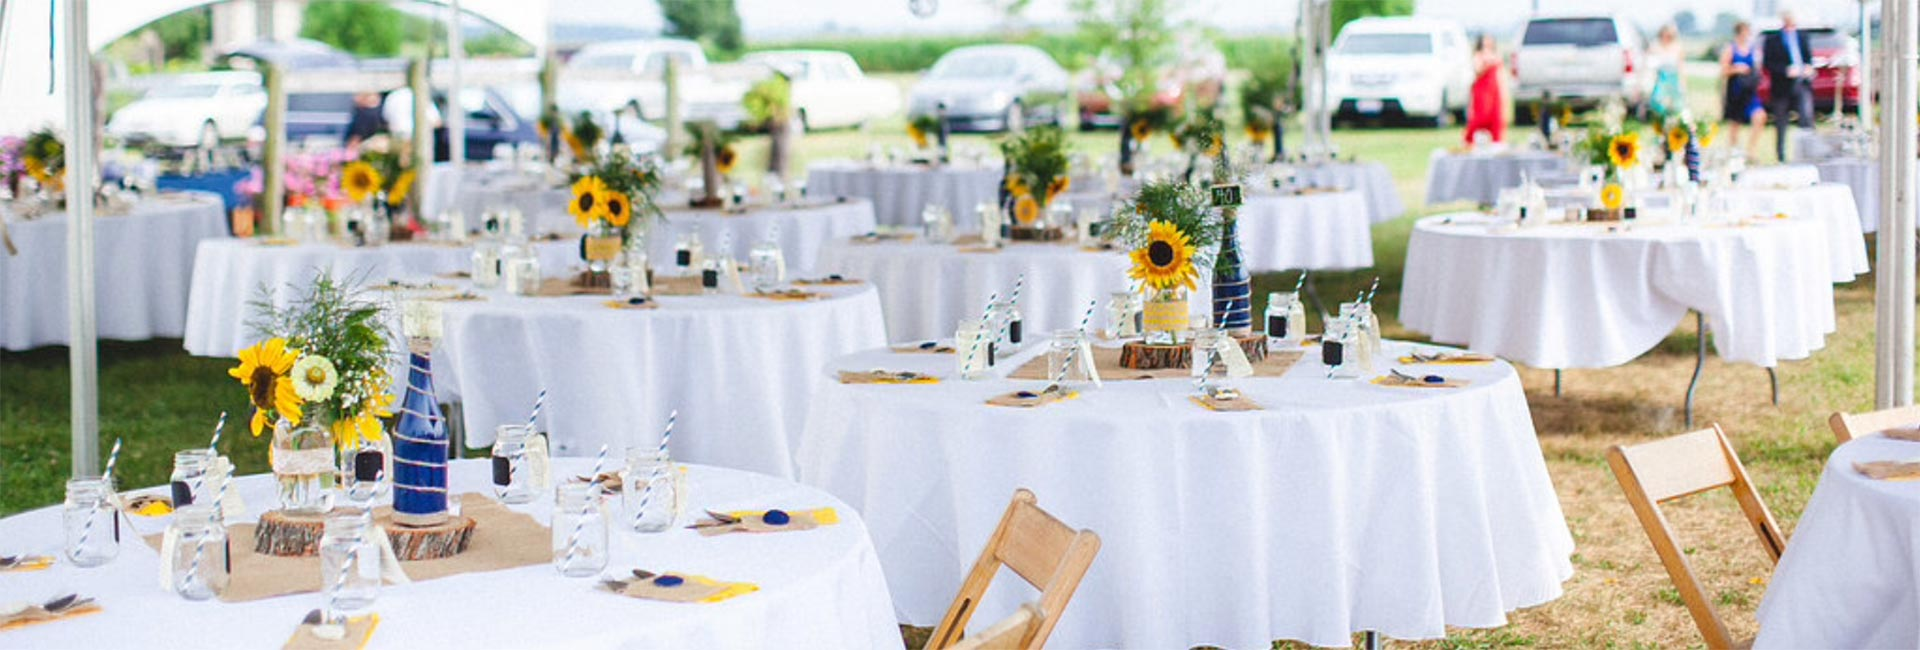 tent and party supply rentals in ohio personal touch